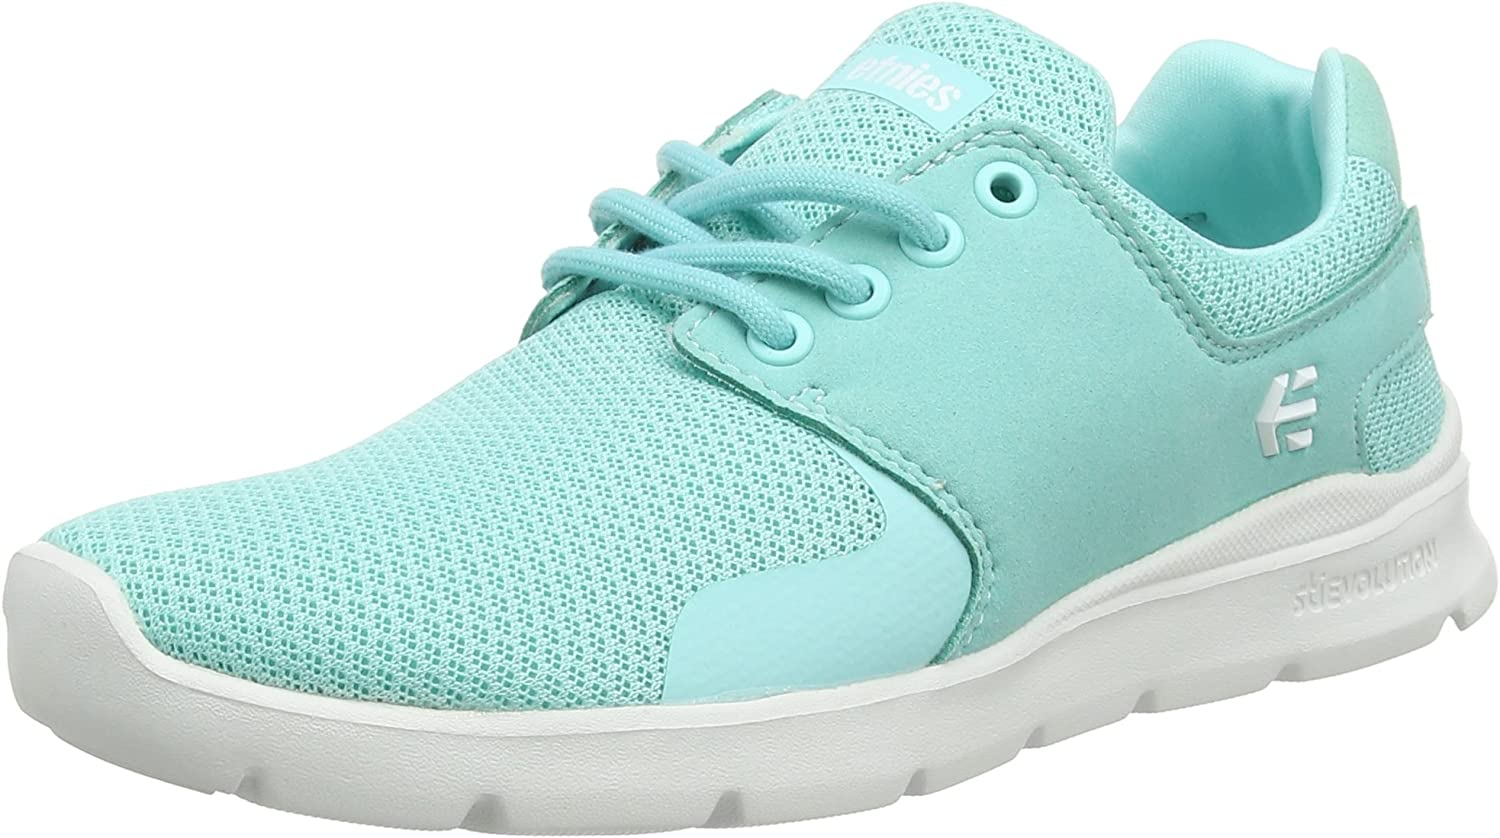 Etnies Women's Scout Xt Shoe Sales of SALE items from new works Quality inspection Ws Skate